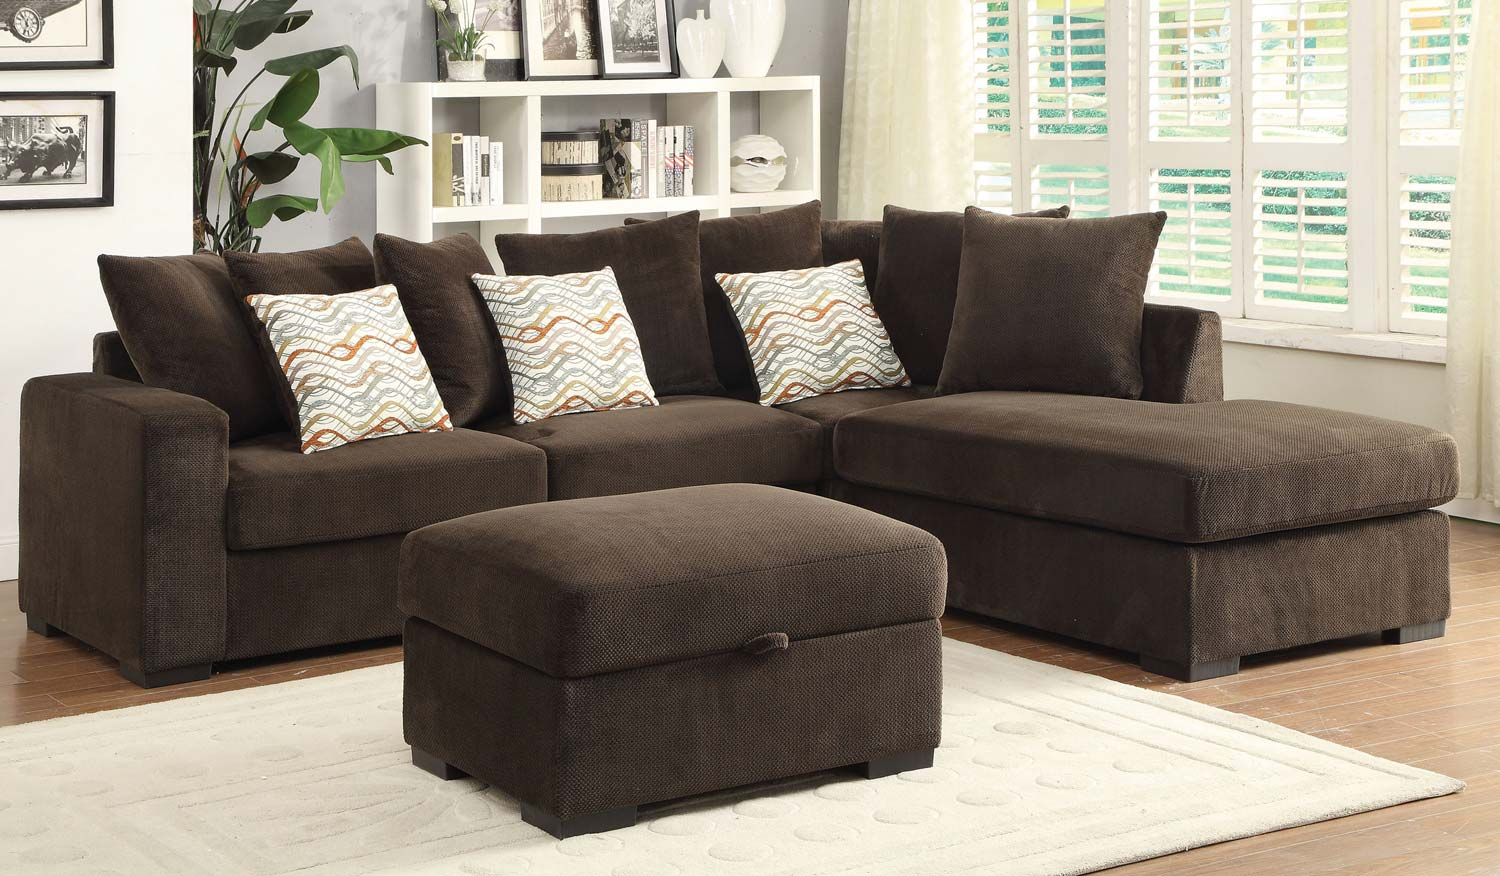 Coaster Olson Sectional Sofa Set Chocolate With Brown